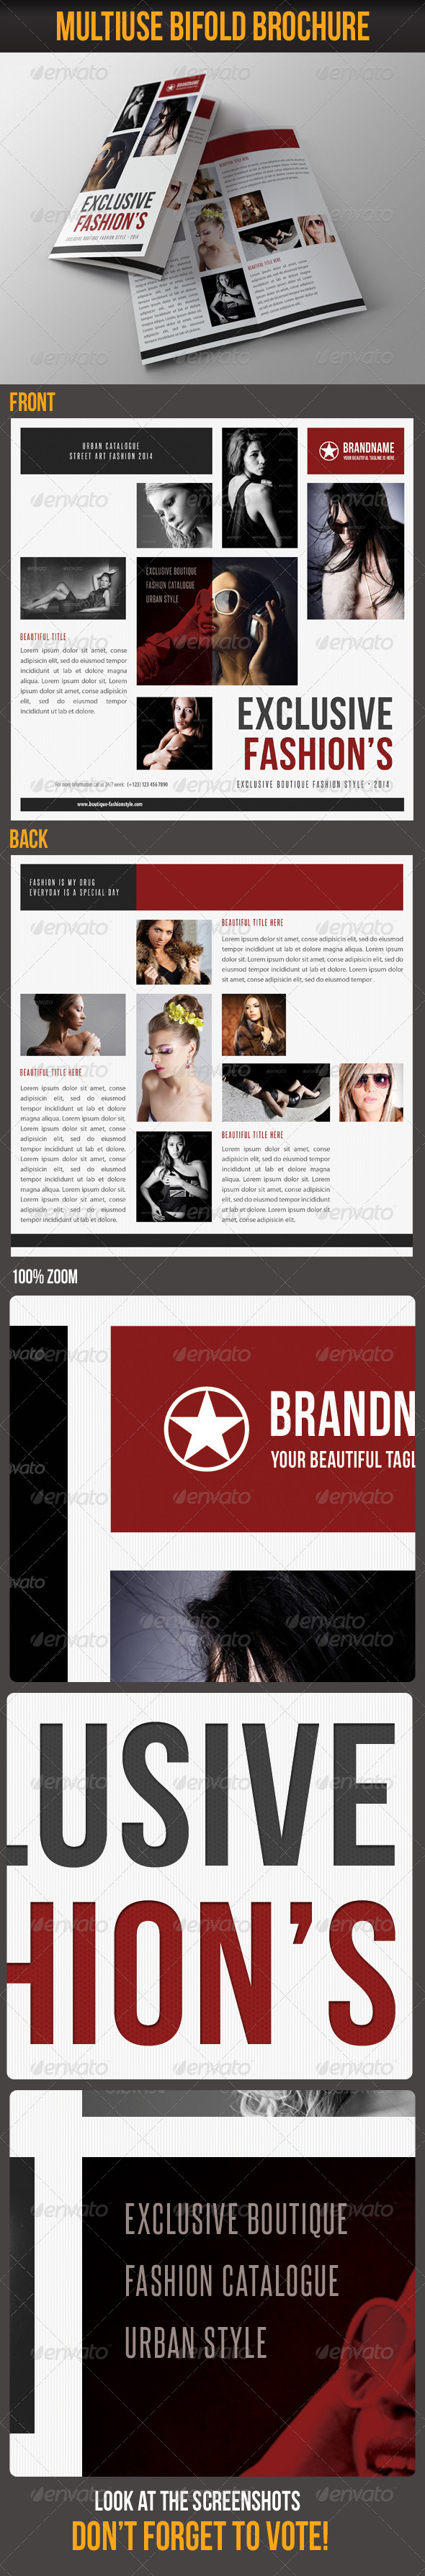 GraphicRiver Multiuse Bifold Brochure 52 6977188